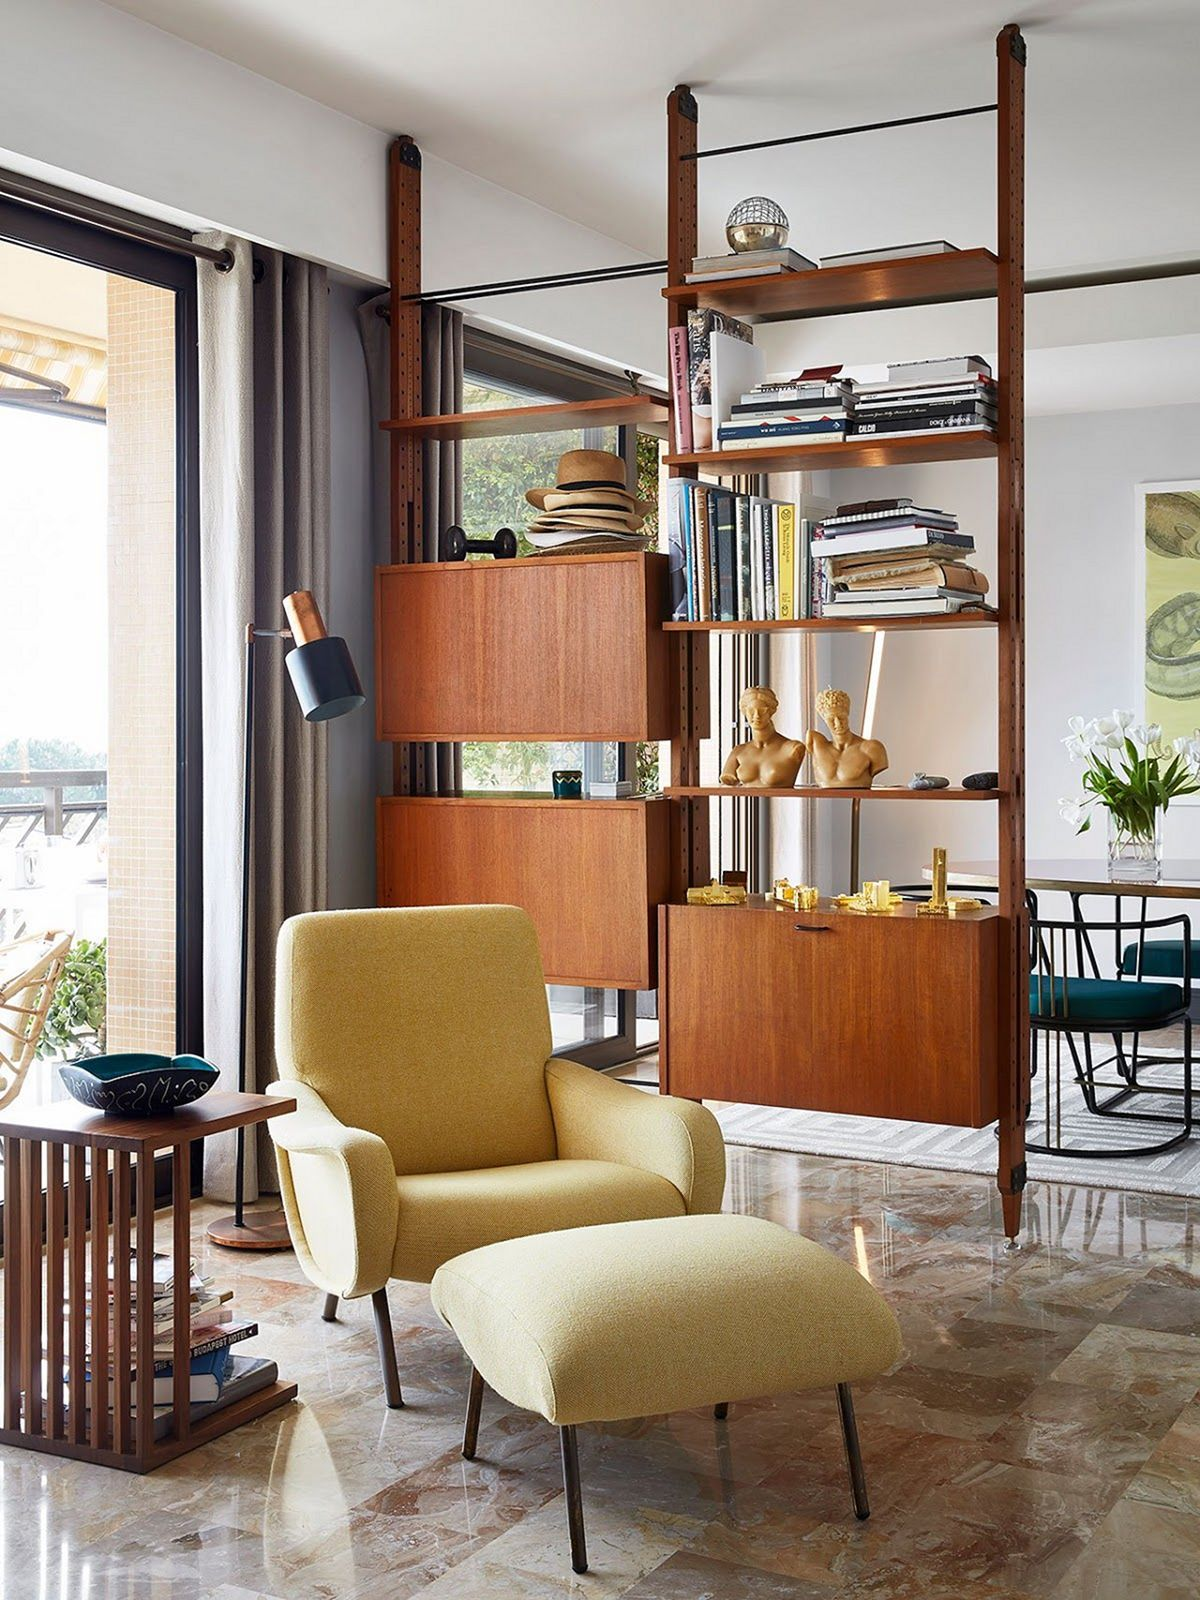 Vintage Living Room Ideas For Small Spaces: 17 Modern Living Room Divider Ideas For Small Space